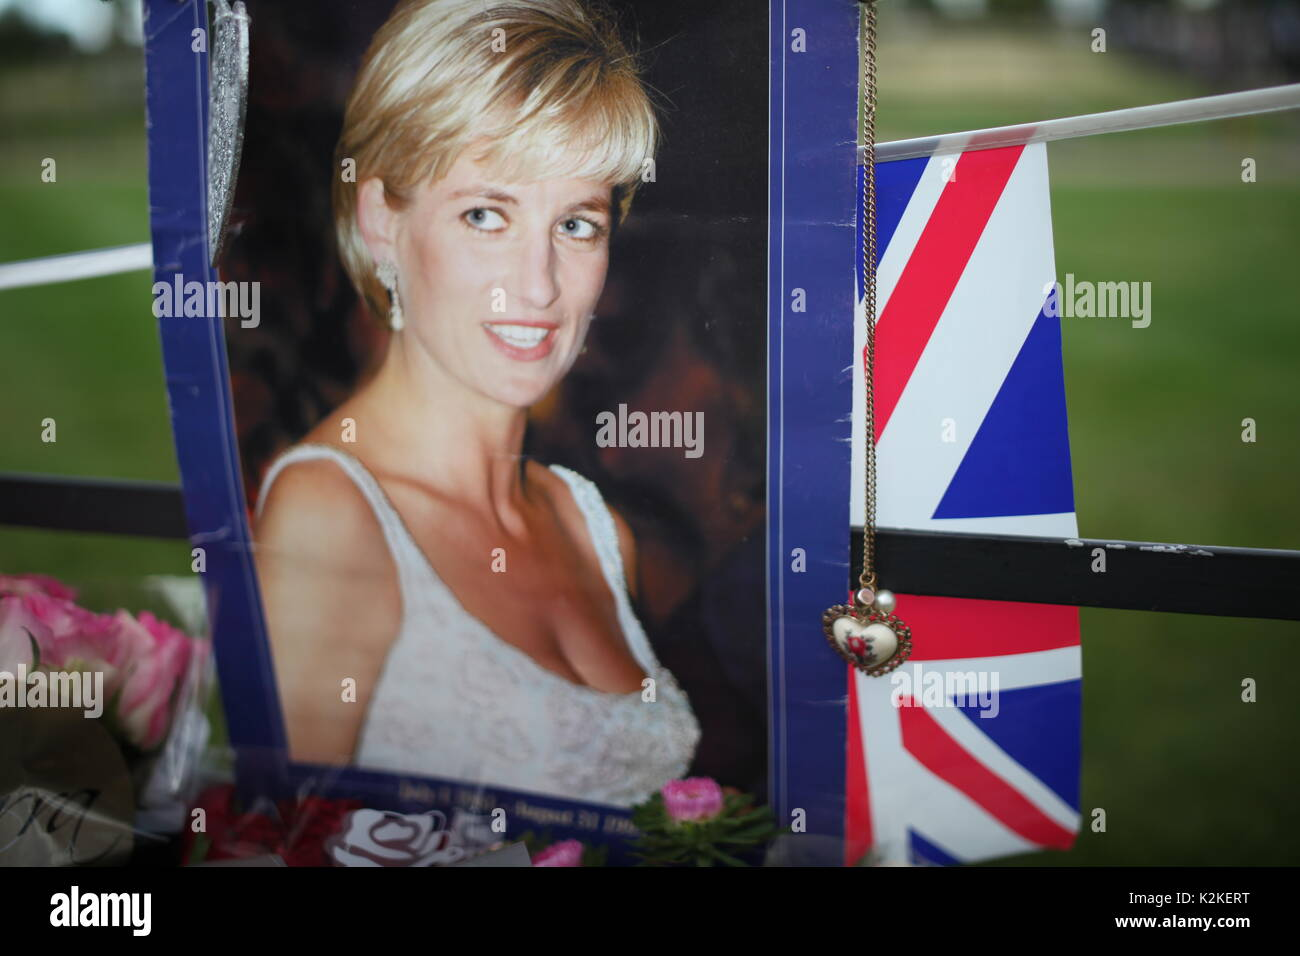 London, UK. 31st Aug, 2017. People pay tribute to Princess Diana at Kensington Palace after 20 years of her death, Stock Photo